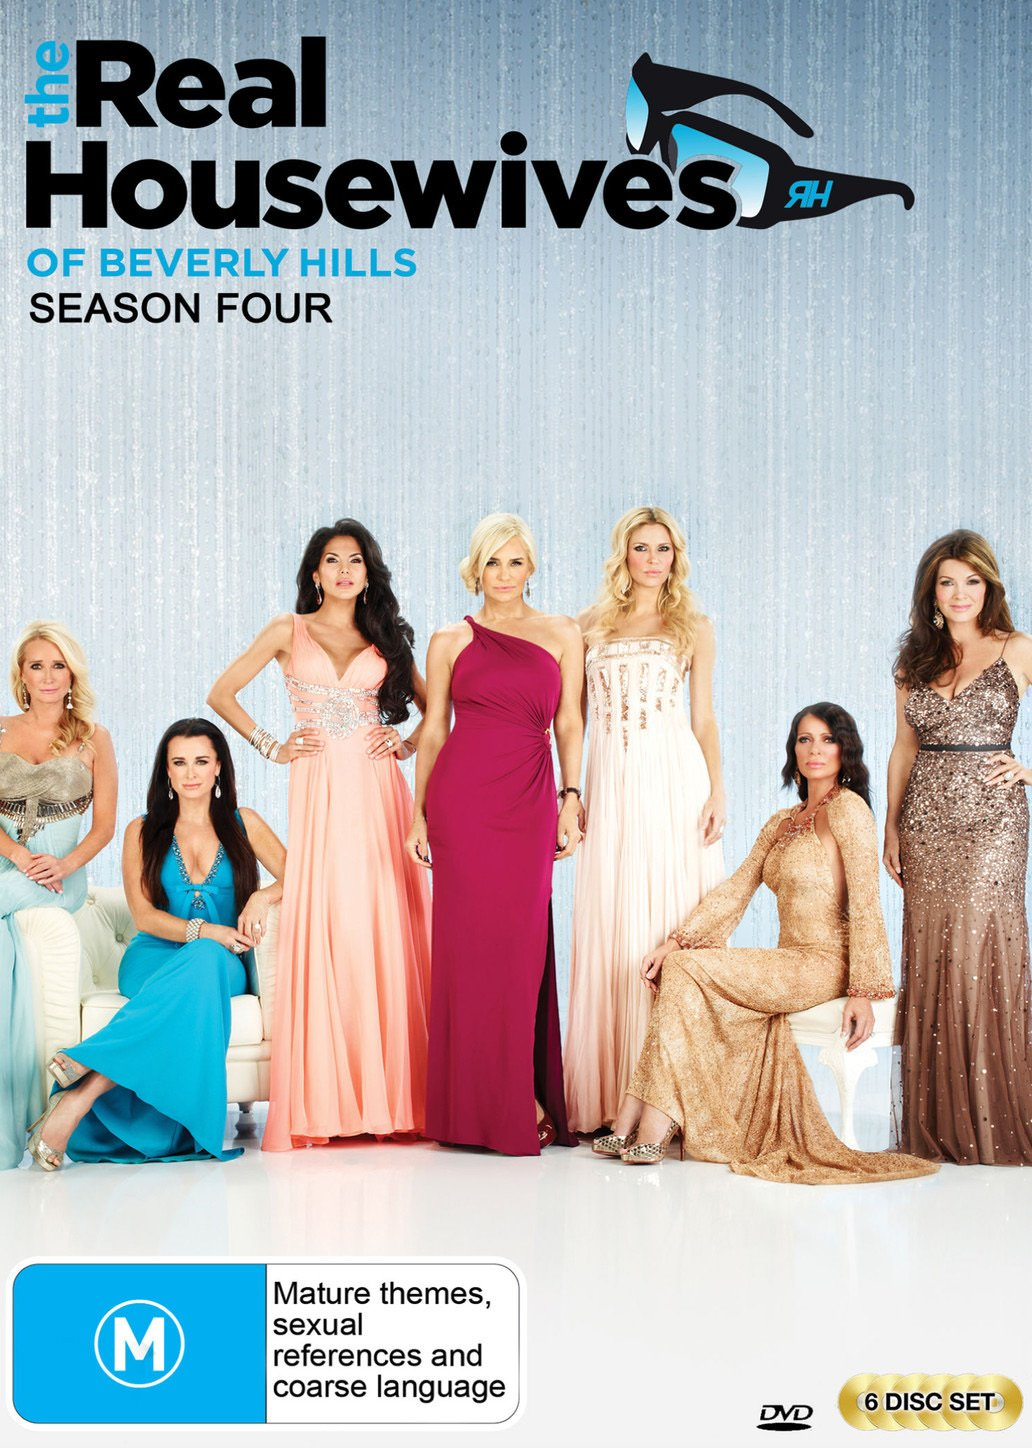 Amazon Com Real Housewives Of Beverly Hills Season 4 Taylor Armstrong Camille Grammer Adrienne Maloof Kyle Richards Movies Tv